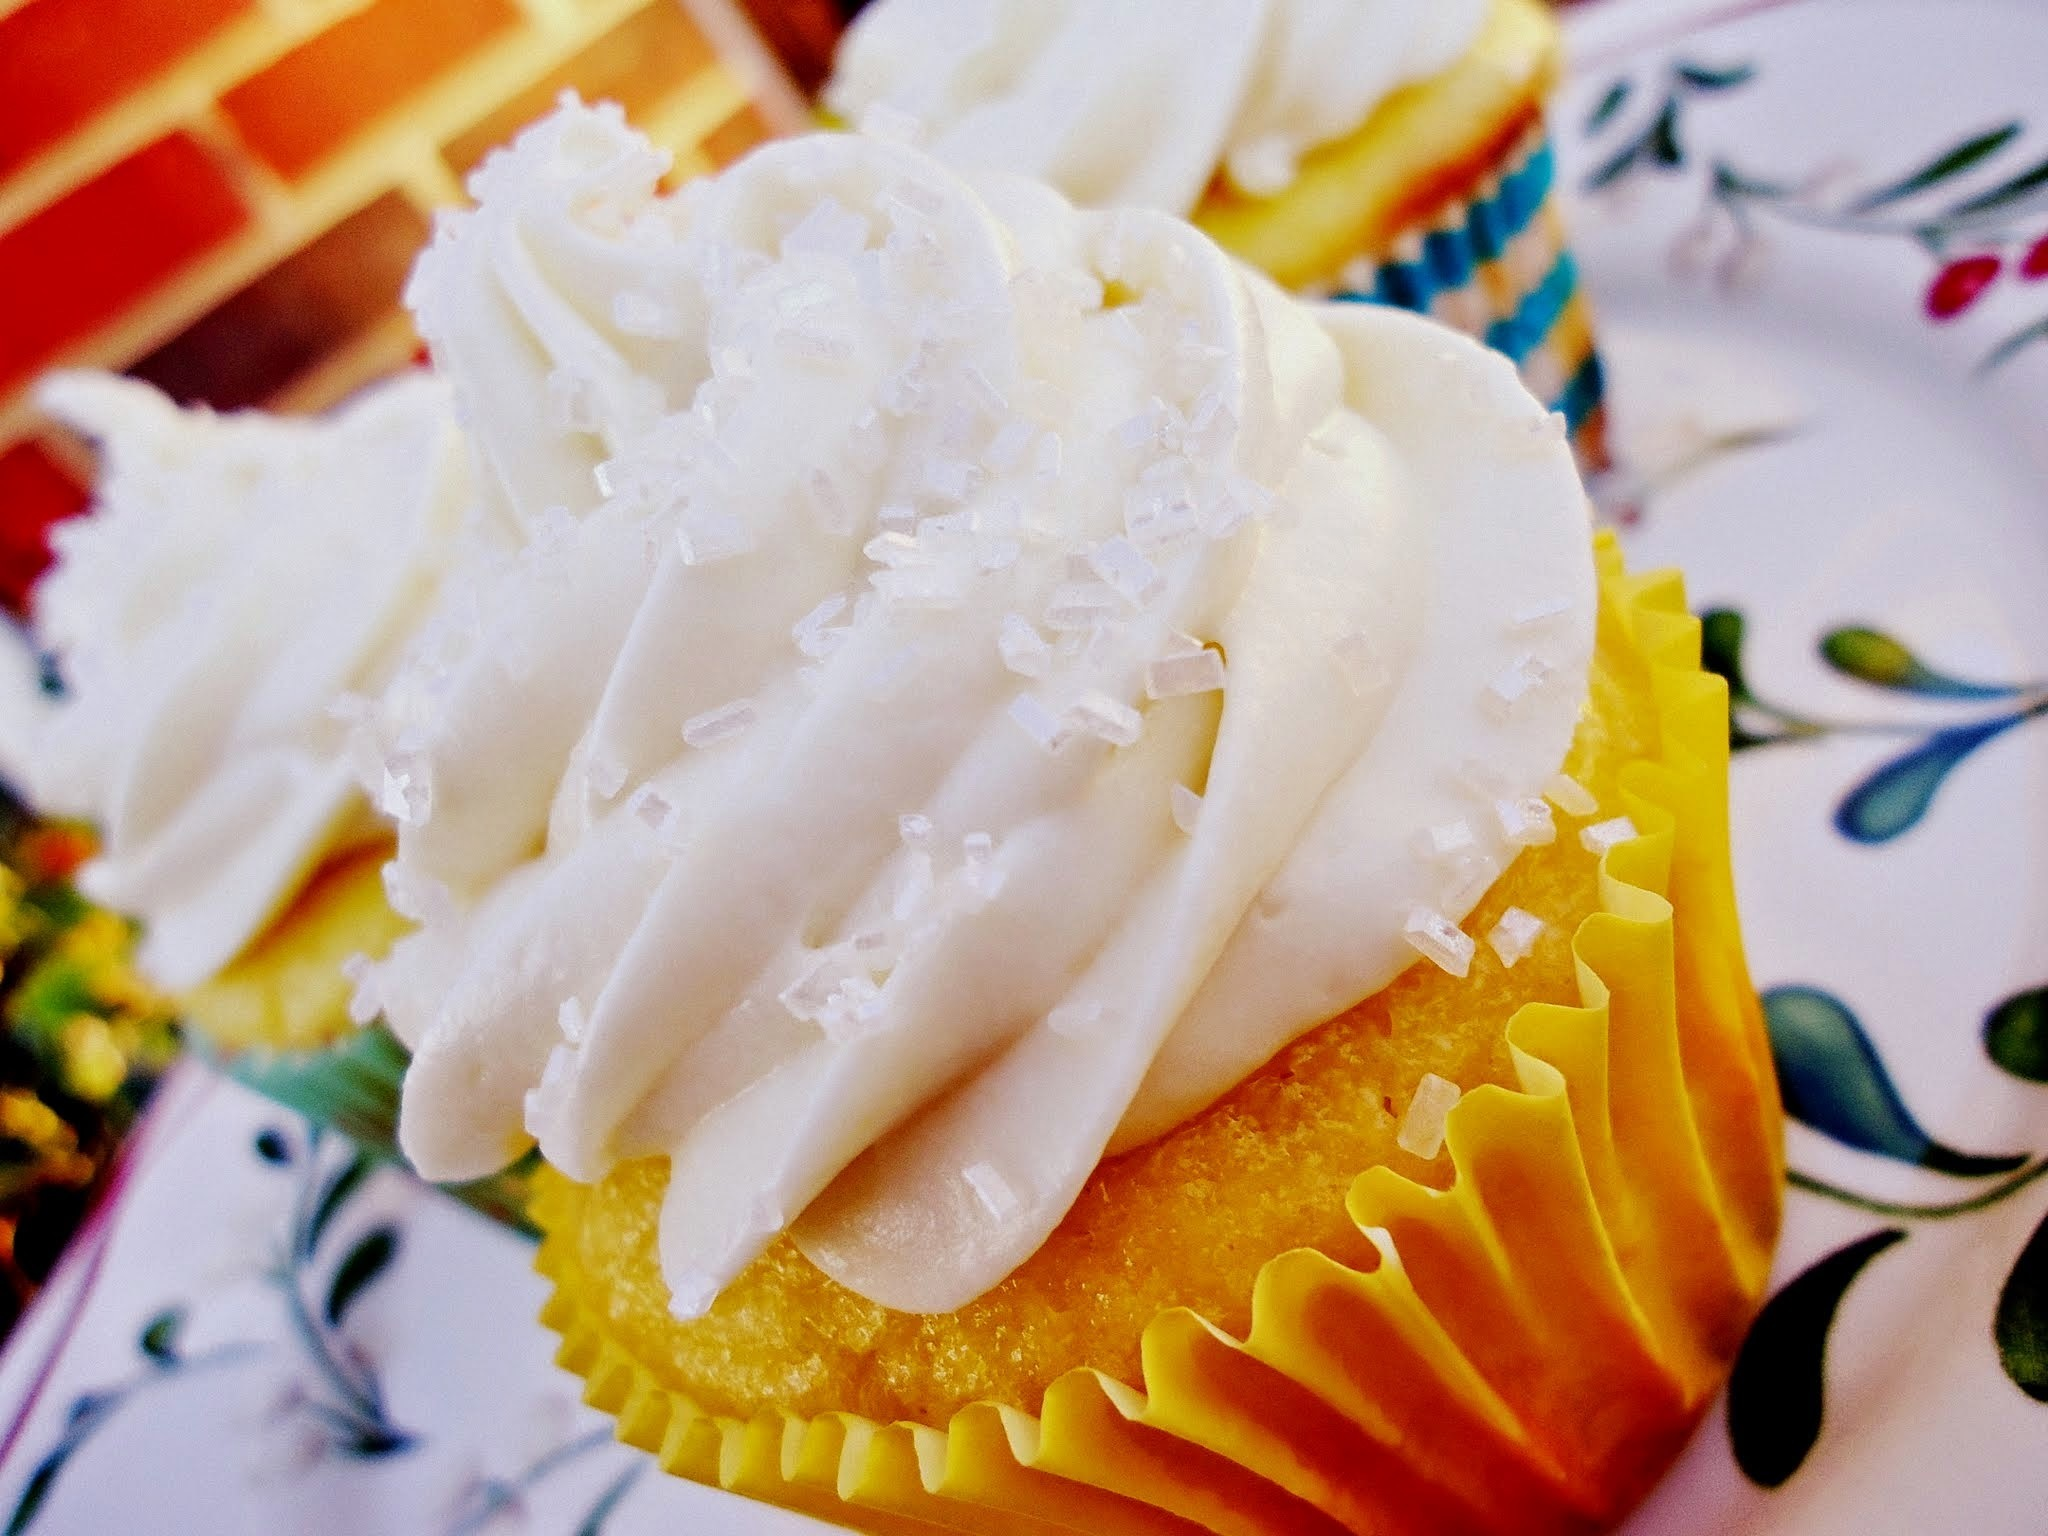 Winter Lemon White Chocolate Cupcakes with White Chocolate Cream Cheese Frosting